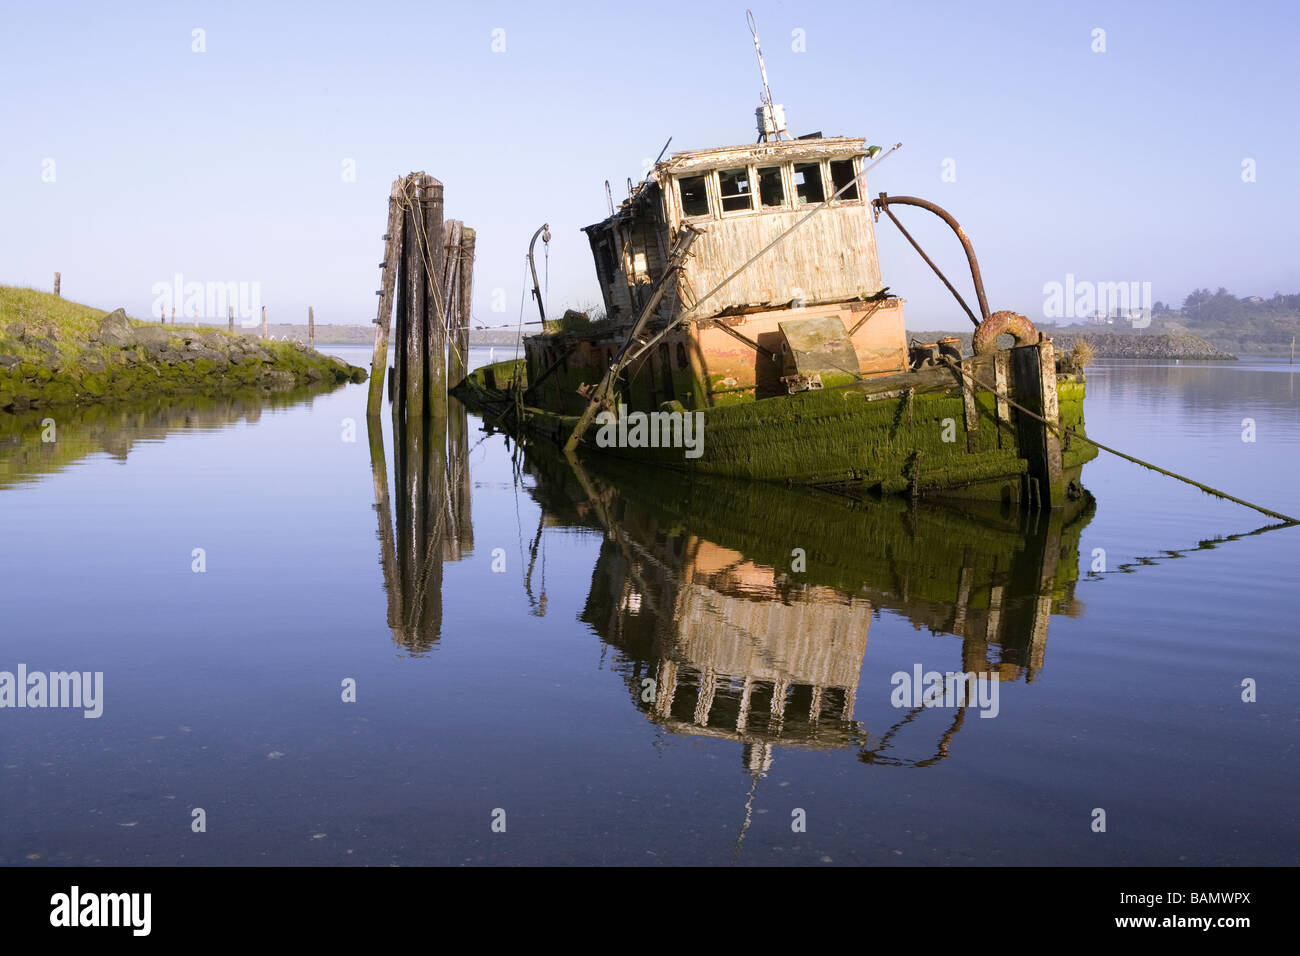 The wroeck of the Mary D Hume in Gold River Oregon - Stock Image